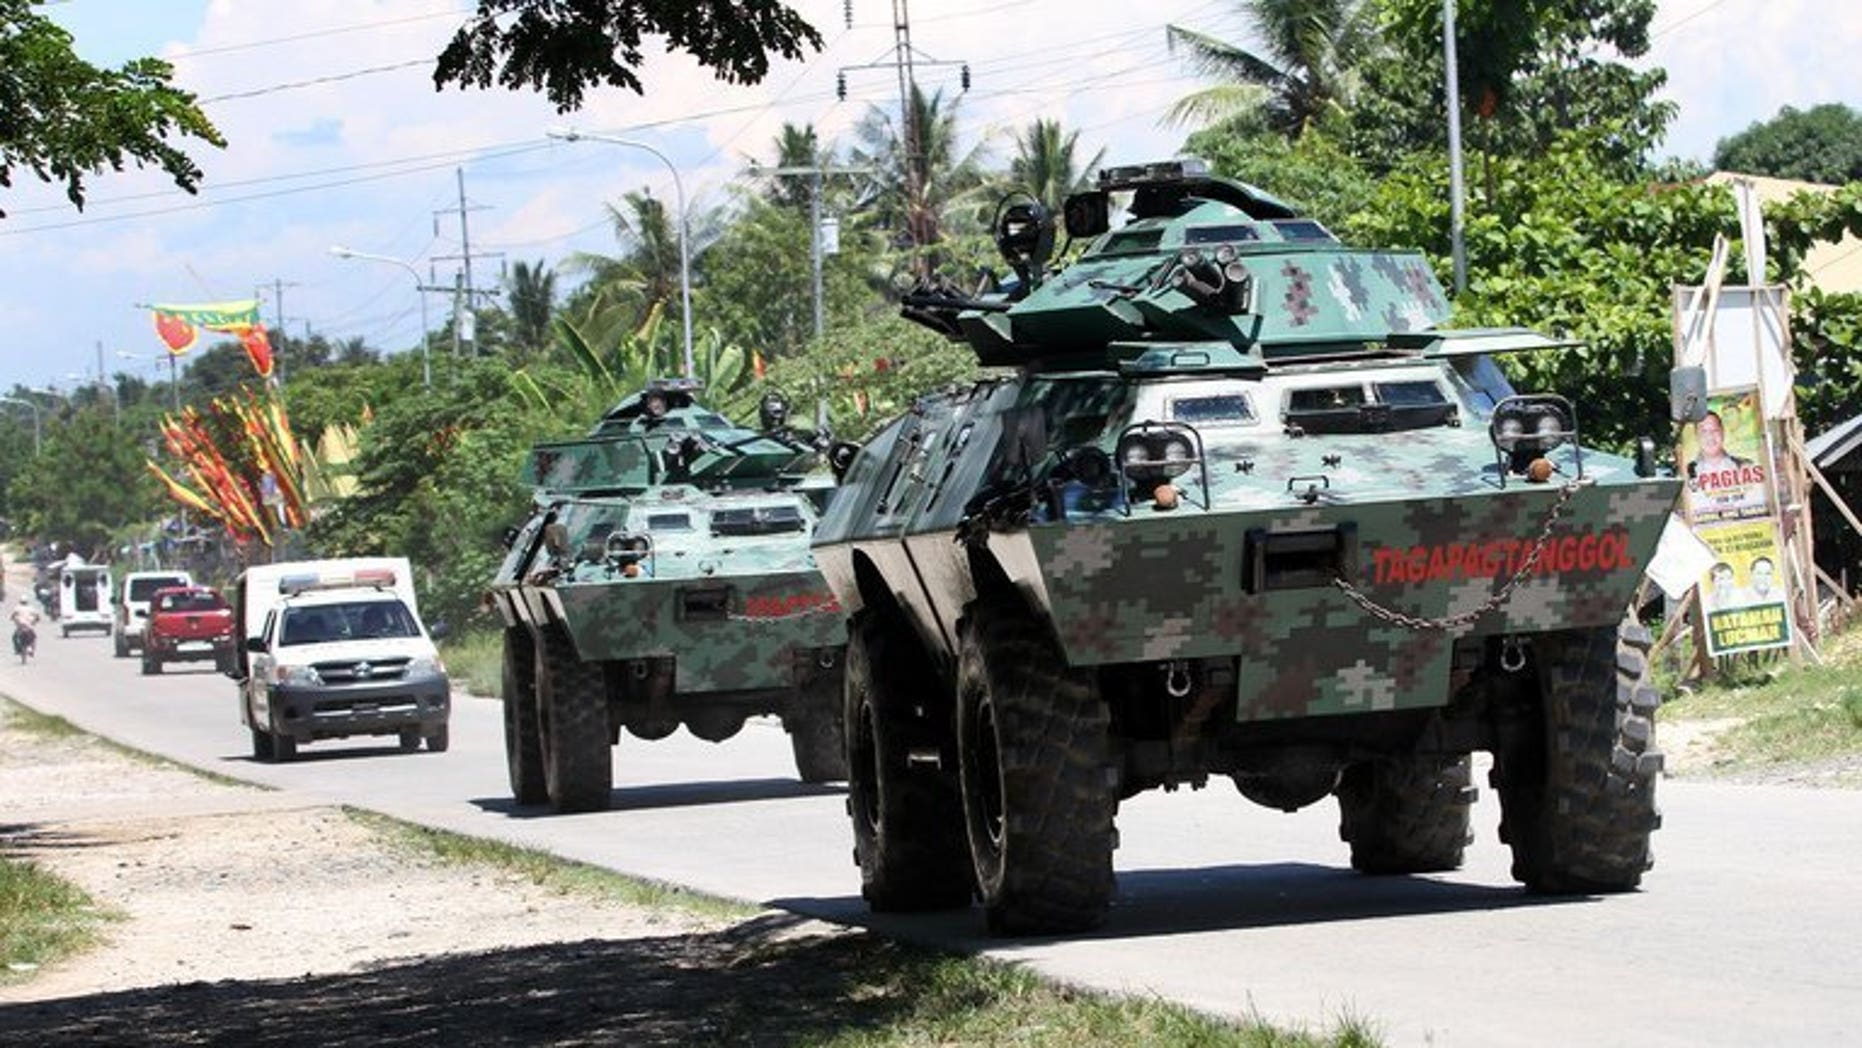 File picture taken on May 13, 2013 shows armored vehicles patrolling a highway on the southern Philippine island of Mindanao. Communist insurgents killed five civilians and kidnapped five soldiers on Mindanao on Tuesday in the latest of a series of violent acts following the collapse of peace talks, authorities said.